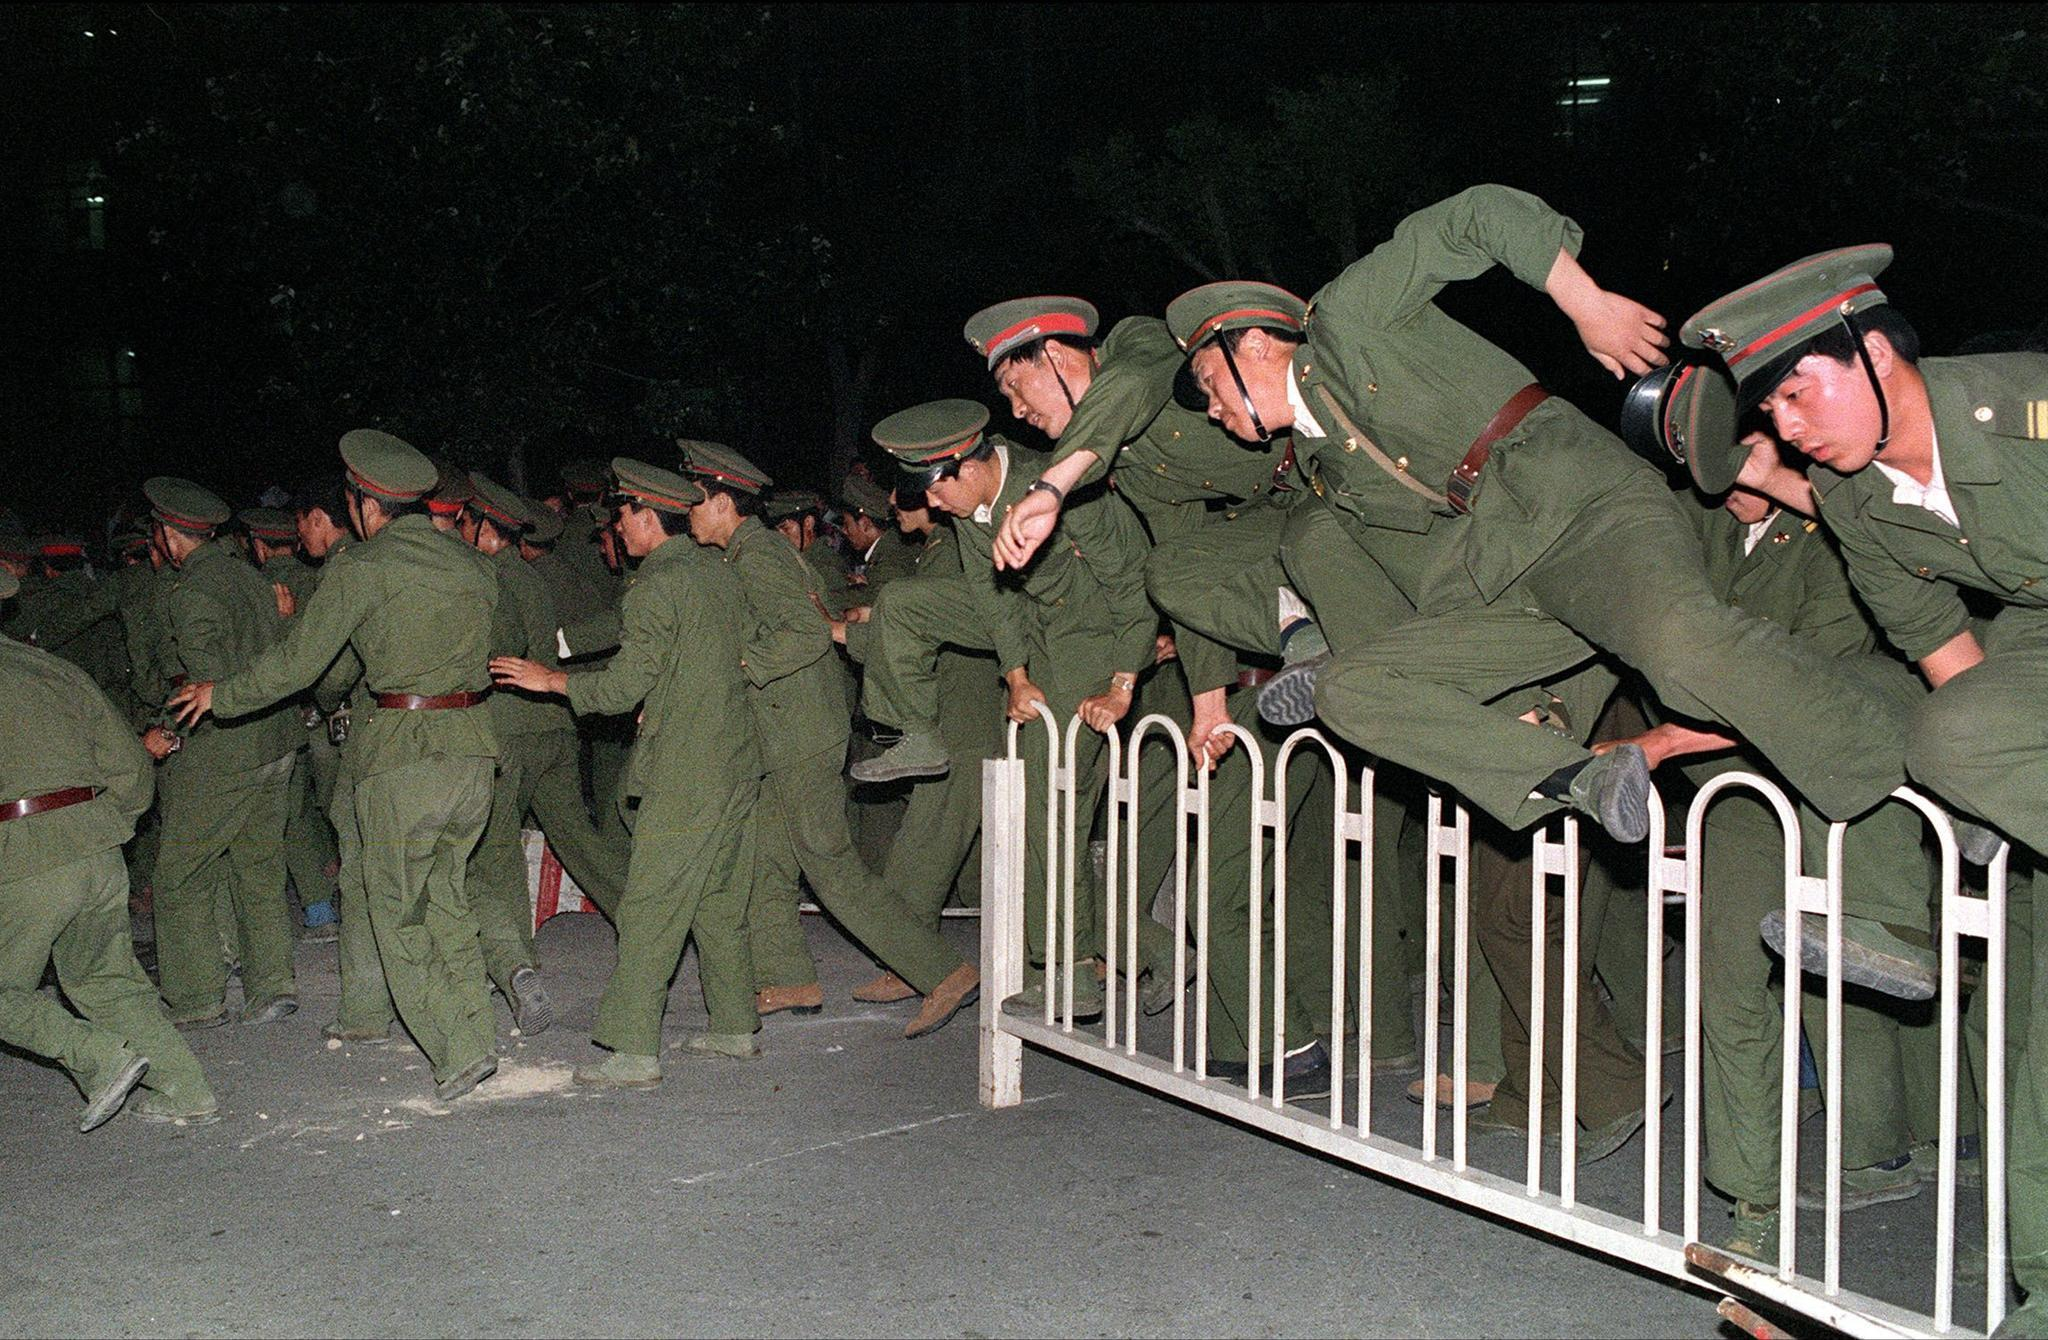 Liberation Army (PLA) soldiers leap over a barrier on Tiananmen Square in central Beijing in June 1989 during heavy clashes with people and dissident students.